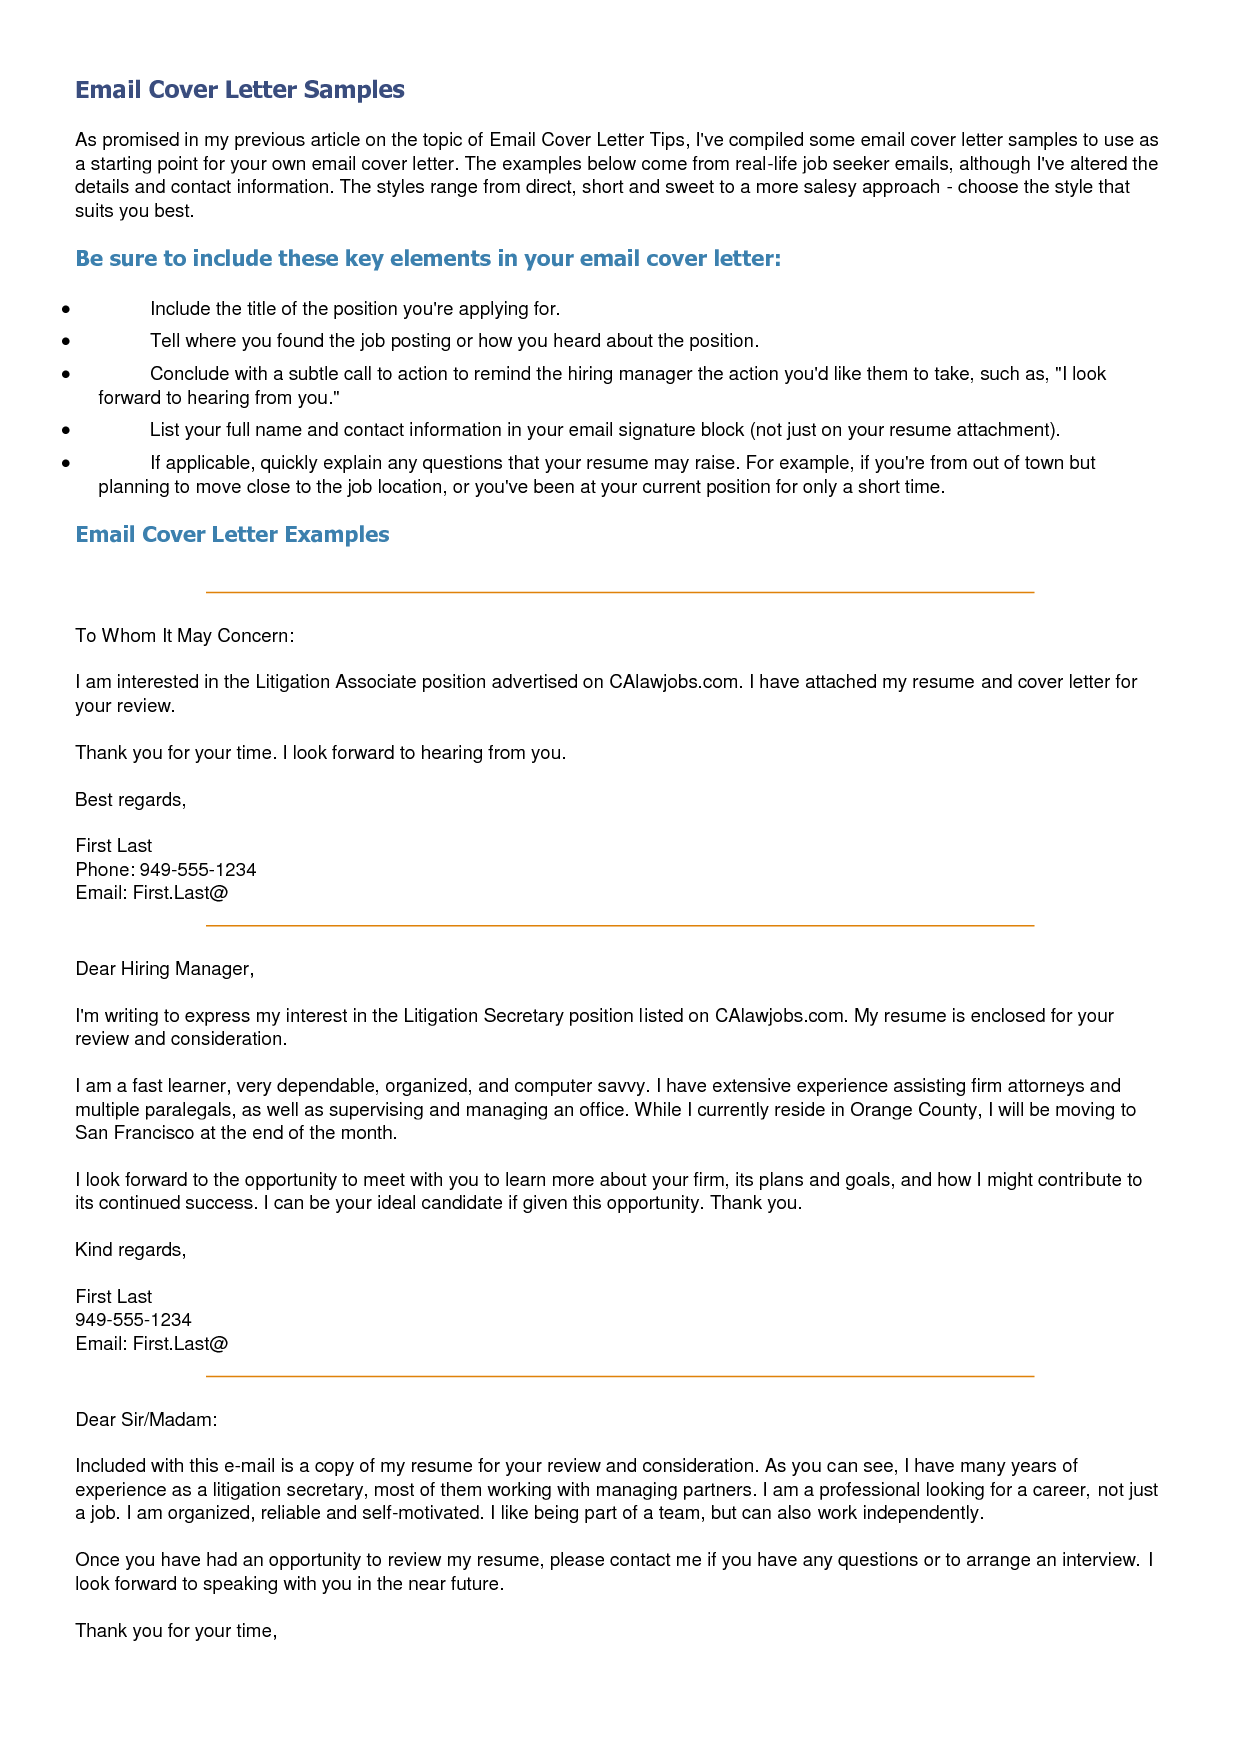 email cover letter sample email cover letter samples - Sample Email Cover Letter